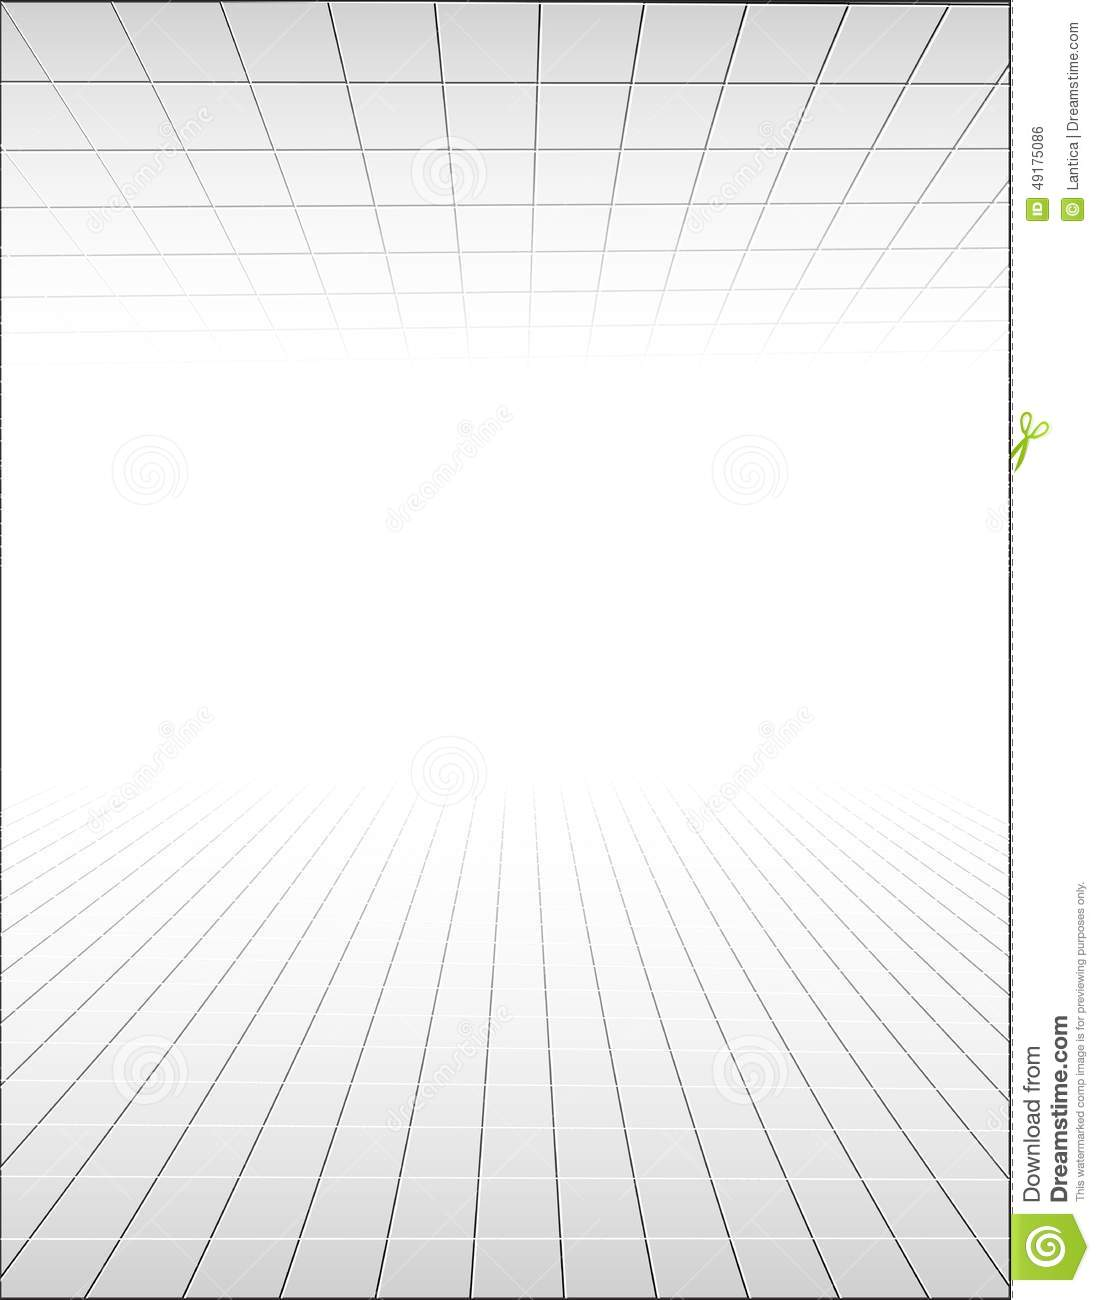 Free Download Wallpaper 3d Graphic Abstract Background With A Perspective Grid Stock Vector